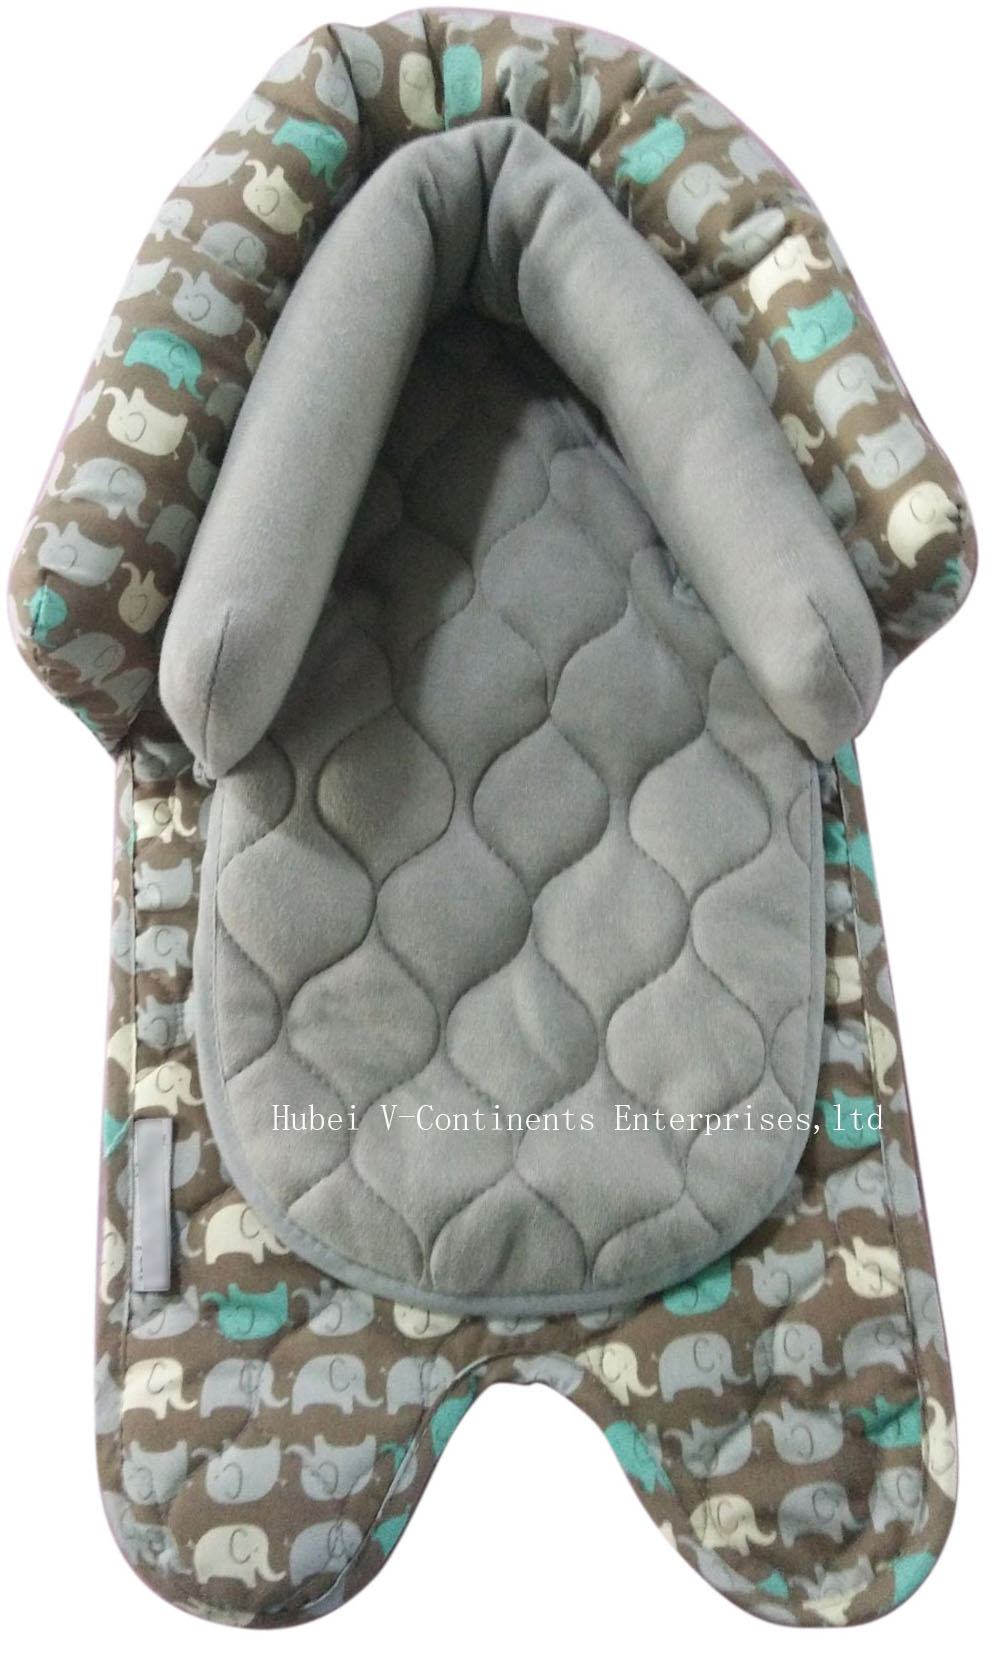 2 in 1 Head Support for Baby Infant in Elephant Pattern